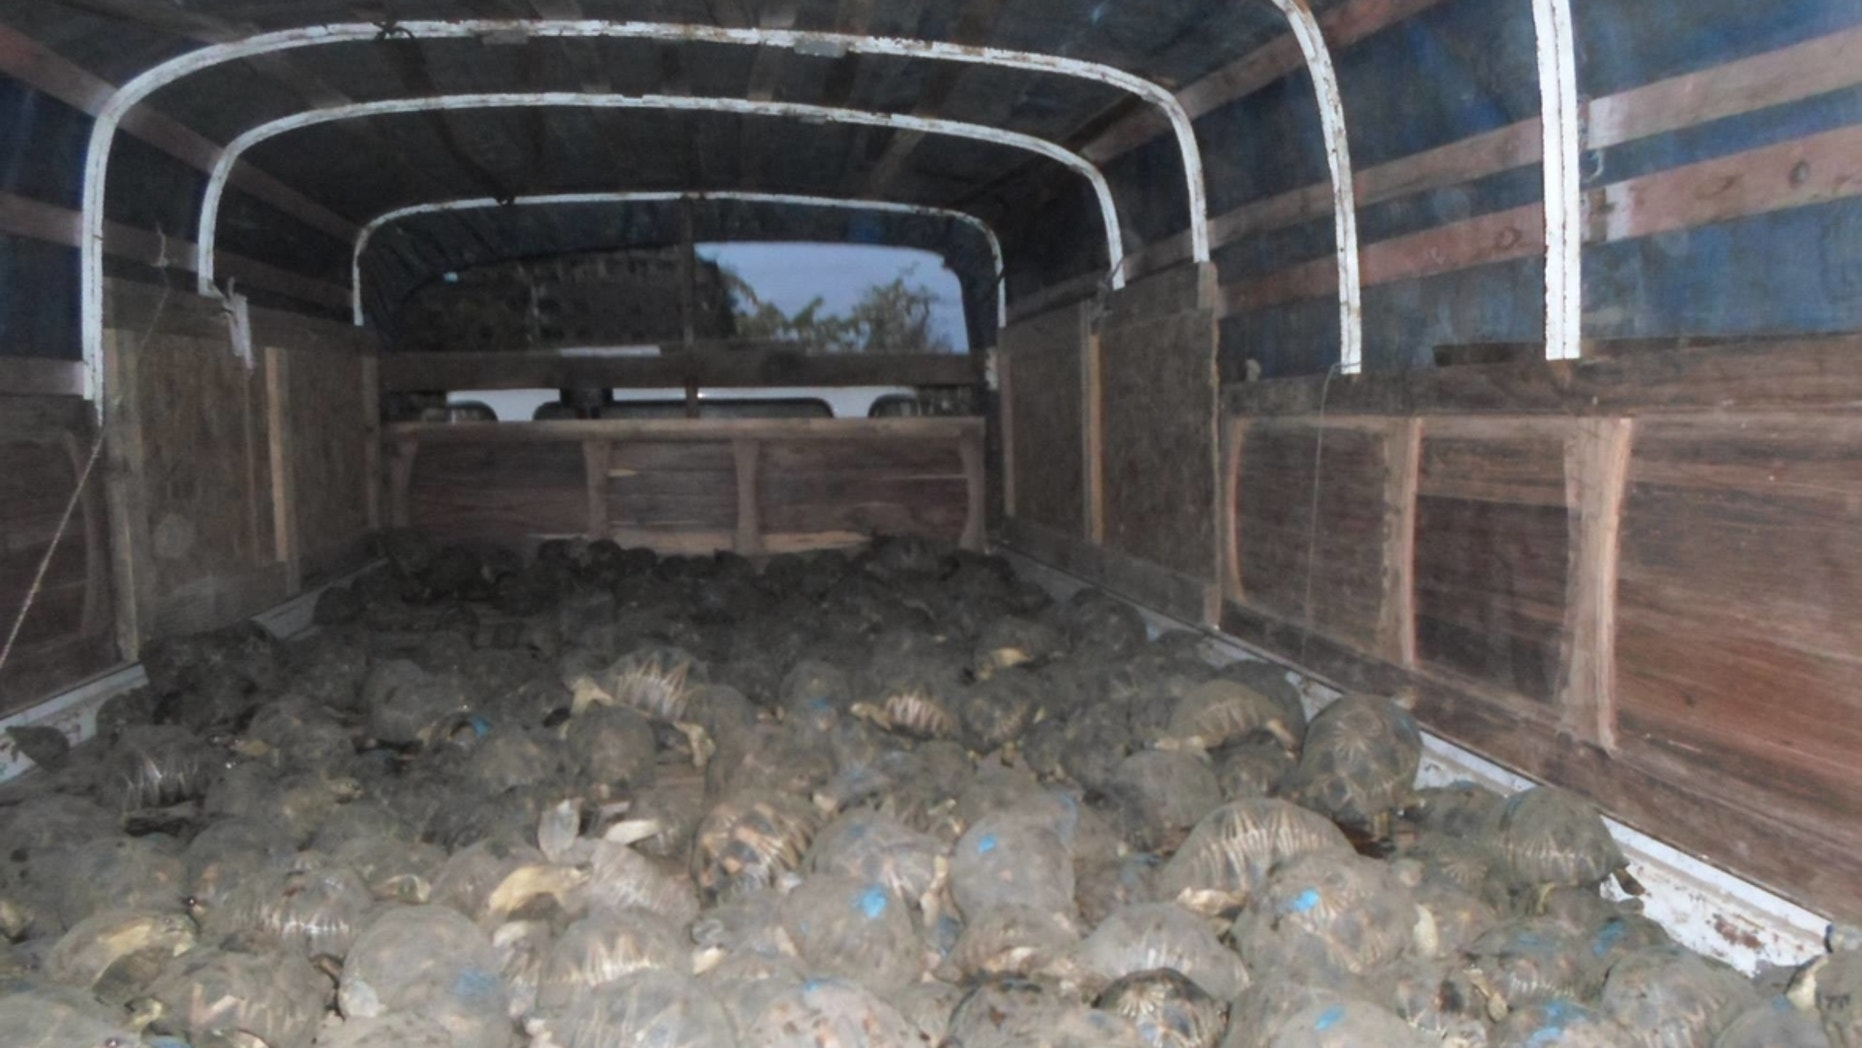 Madagascar officials discovered 10,000 endangered tortoises crammed in a house in Toliara in early April.